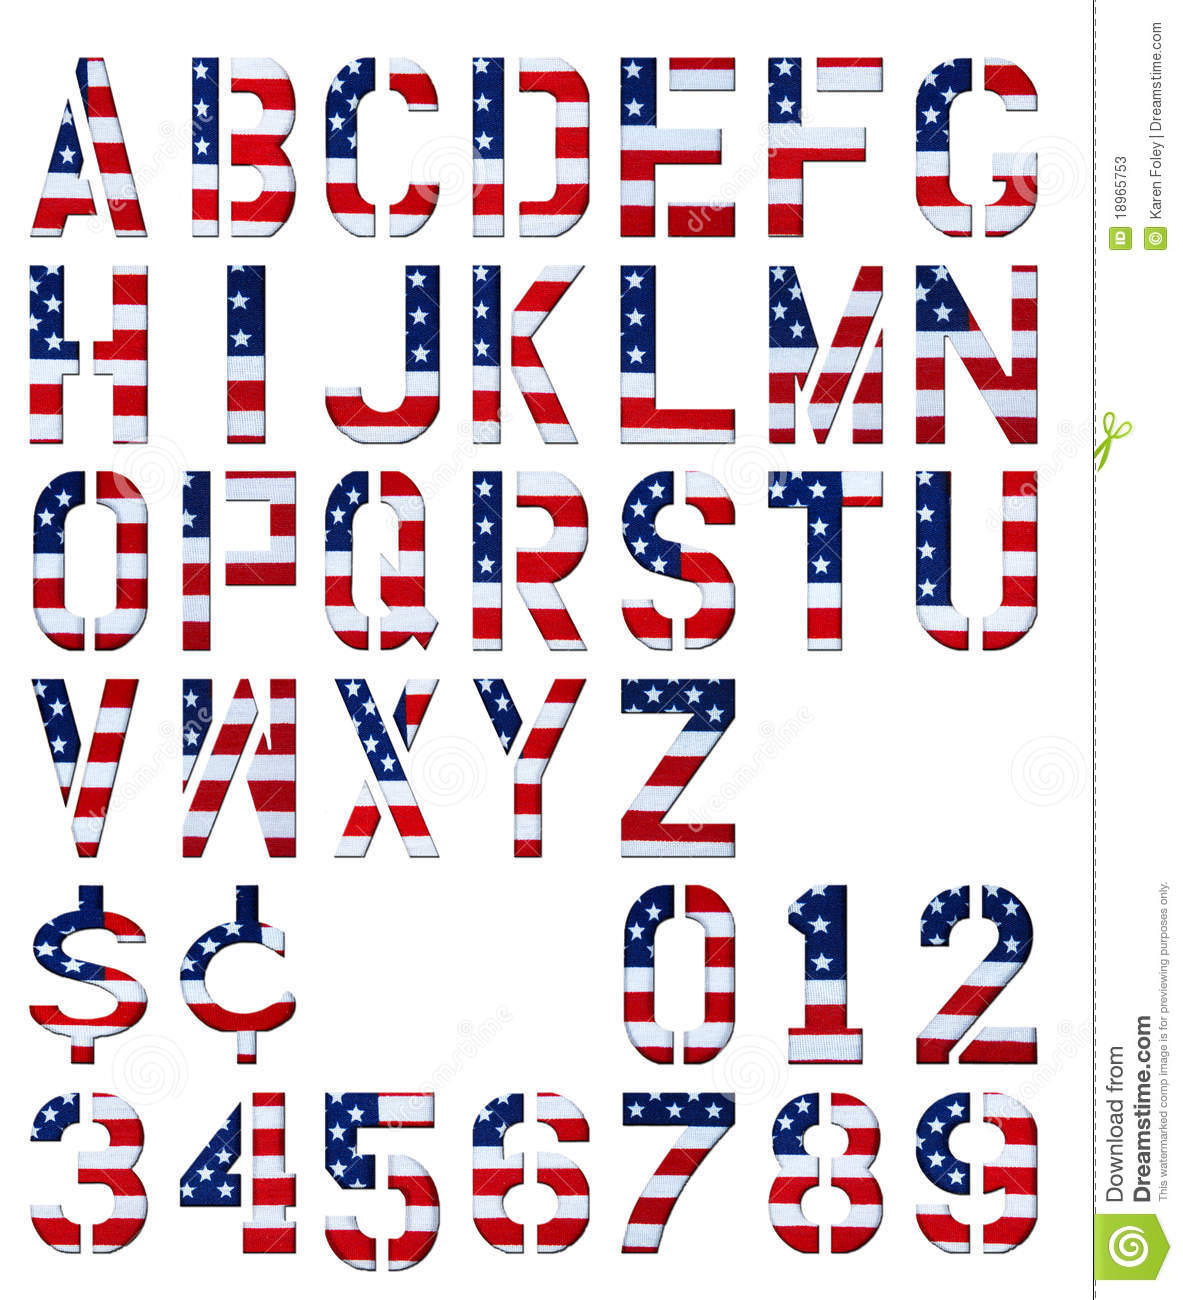 17 American Flag Numbers Font Images